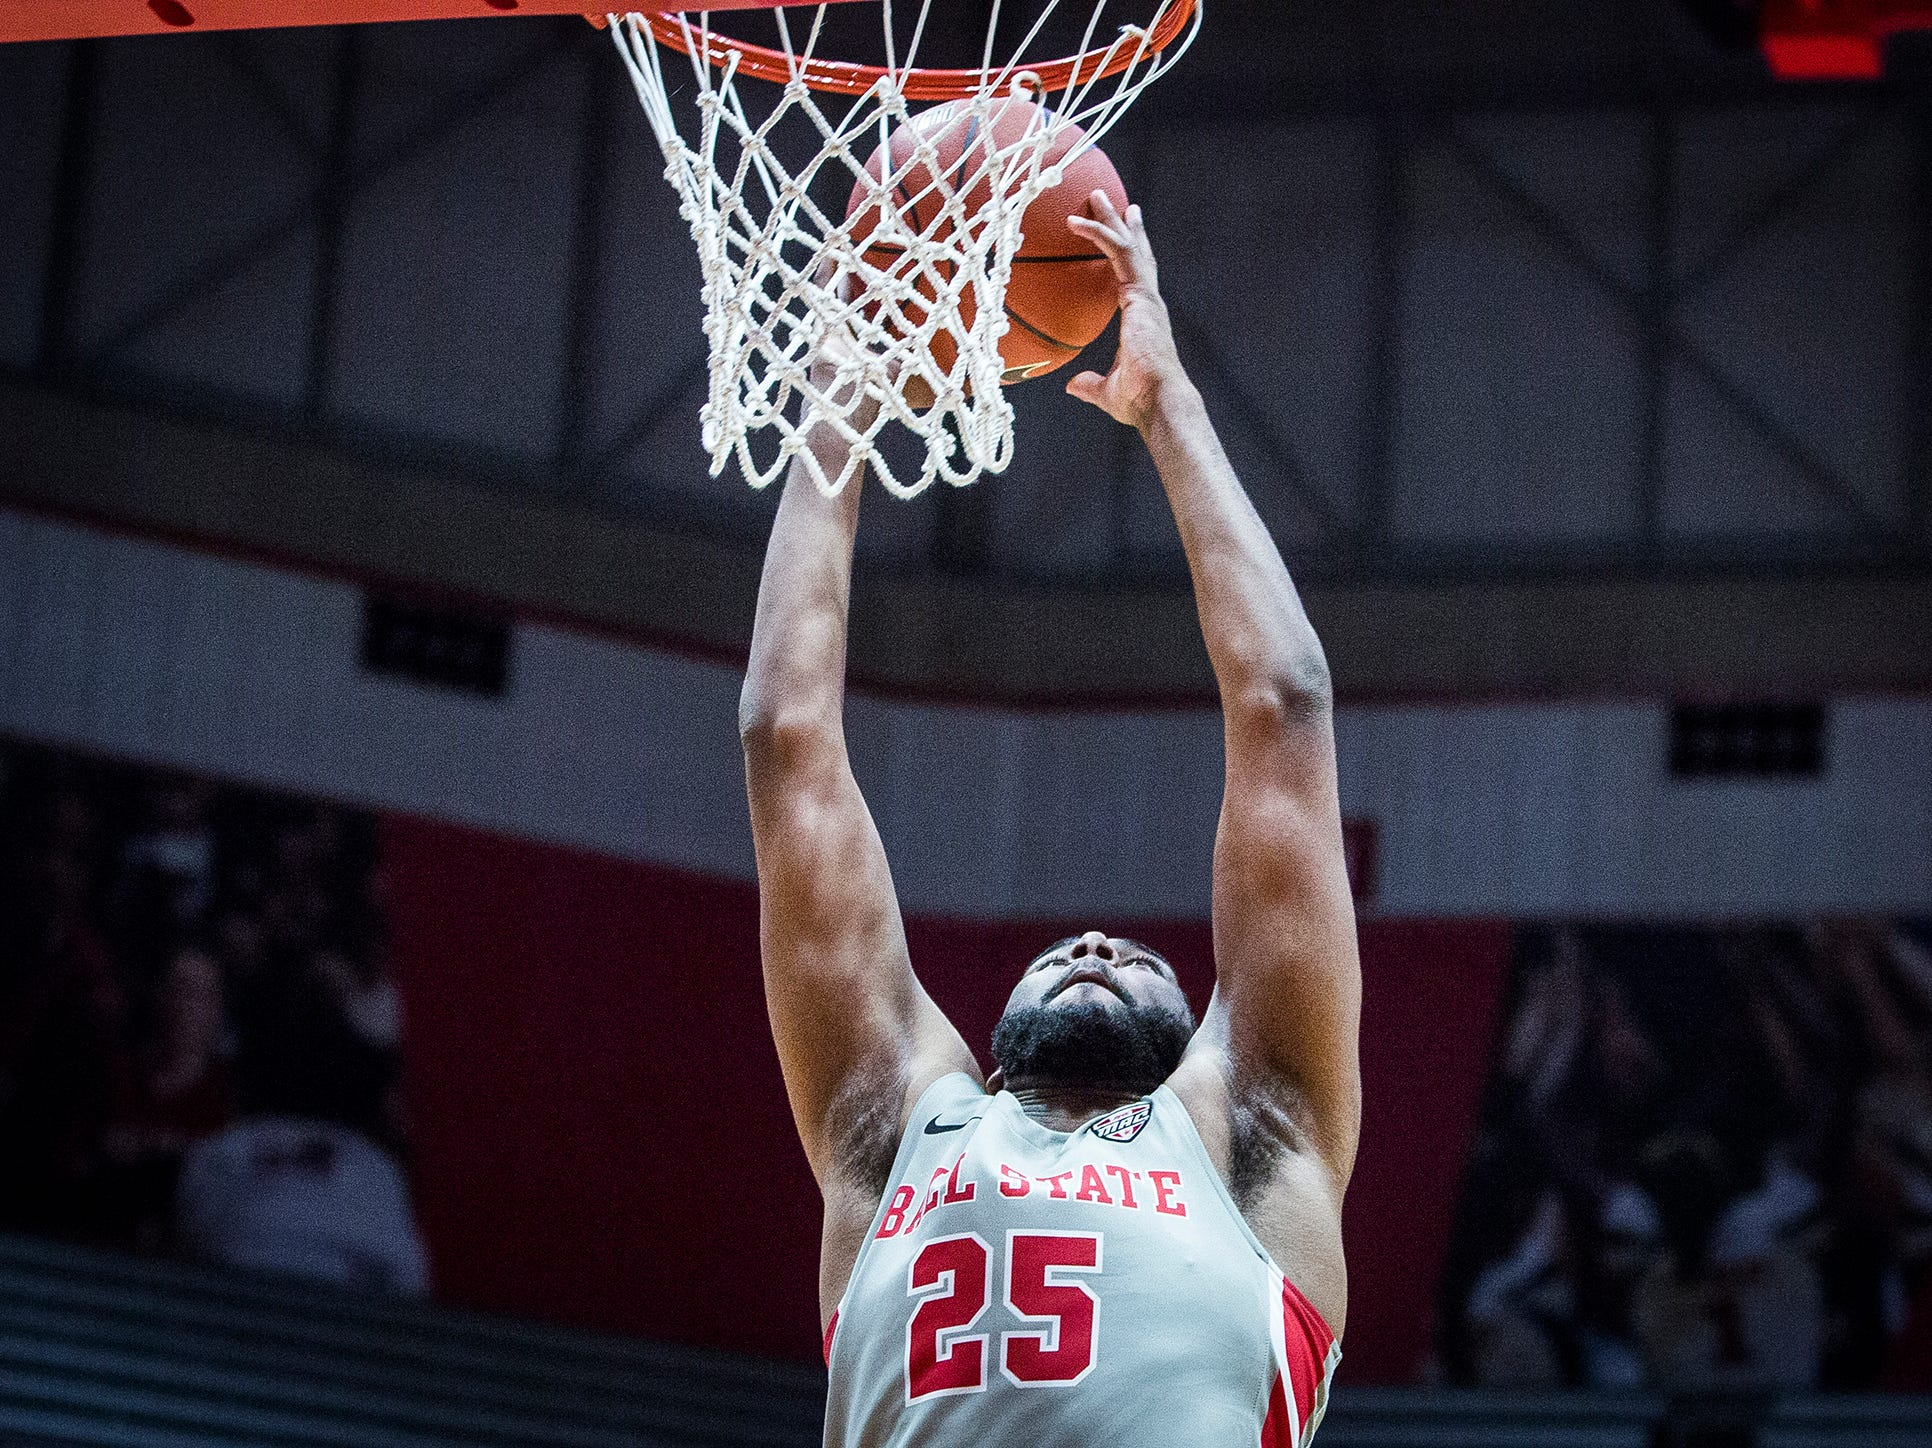 Ball State's Tahjai Teague dunks against Evansville during their game at Worthen Arena Saturday, Nov. 24, 2018.